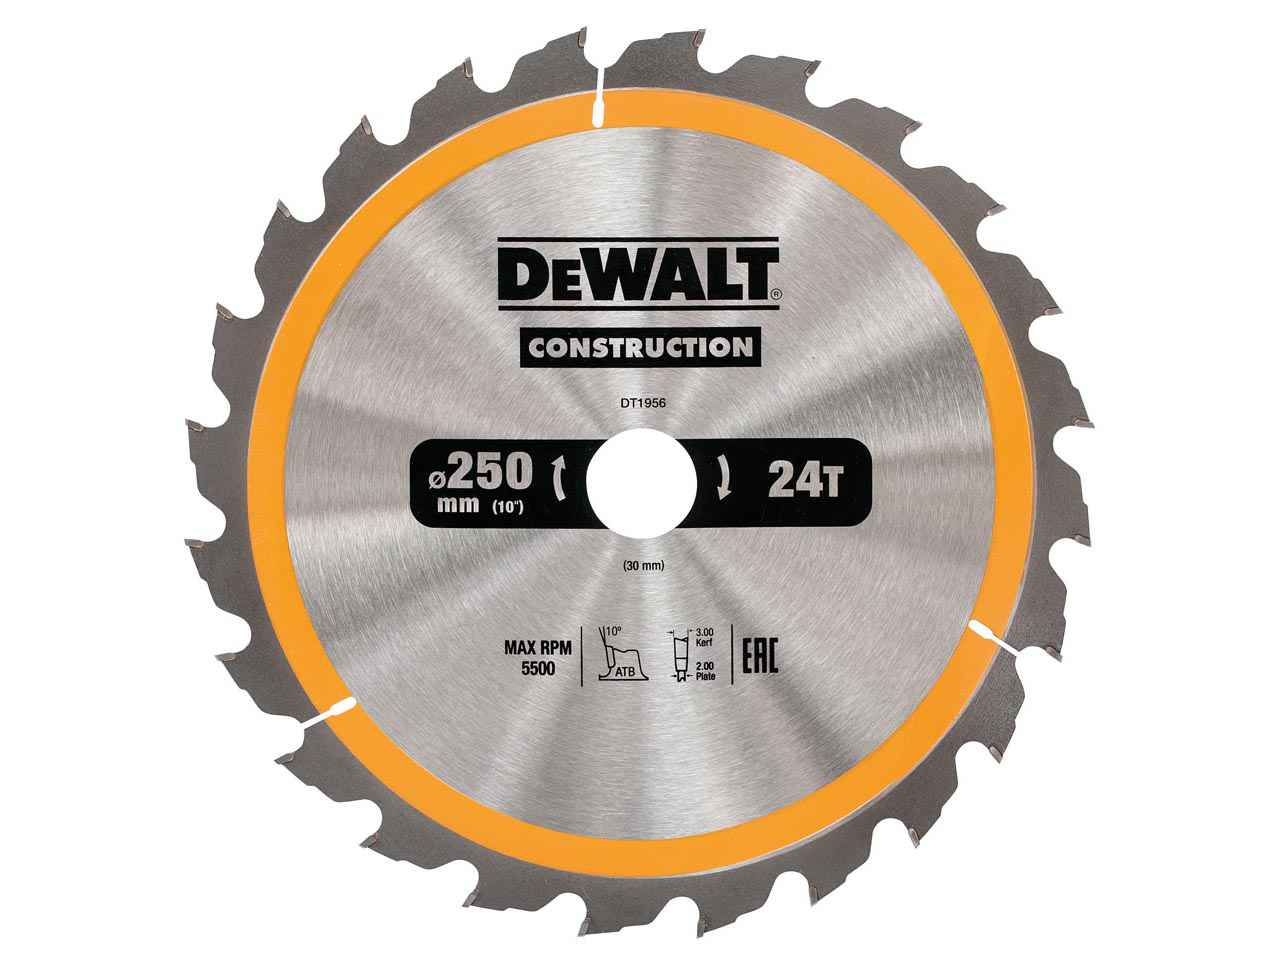 Dewalt dt1956qz construction circular saw blade 250x30mm 24t greentooth Choice Image